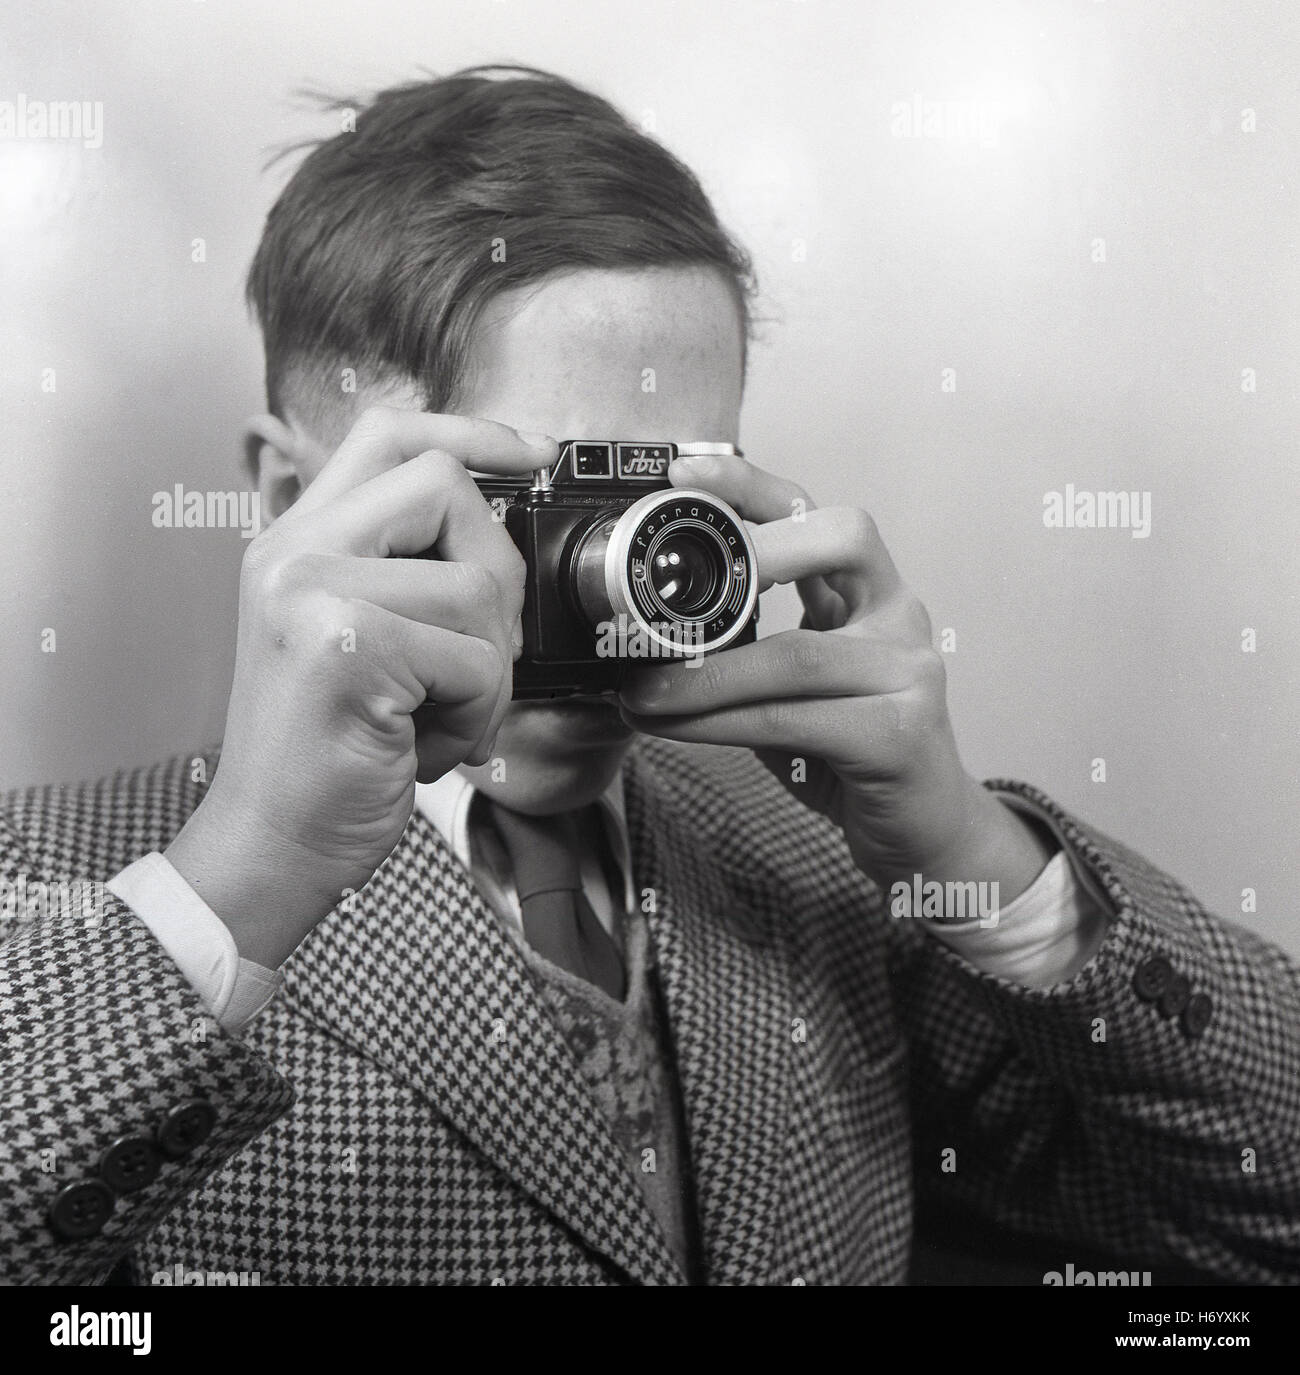 1950s, historical, England, UK, young man wearing a check jacket with tie, taking a hand-held picture with an Italian - Stock Image